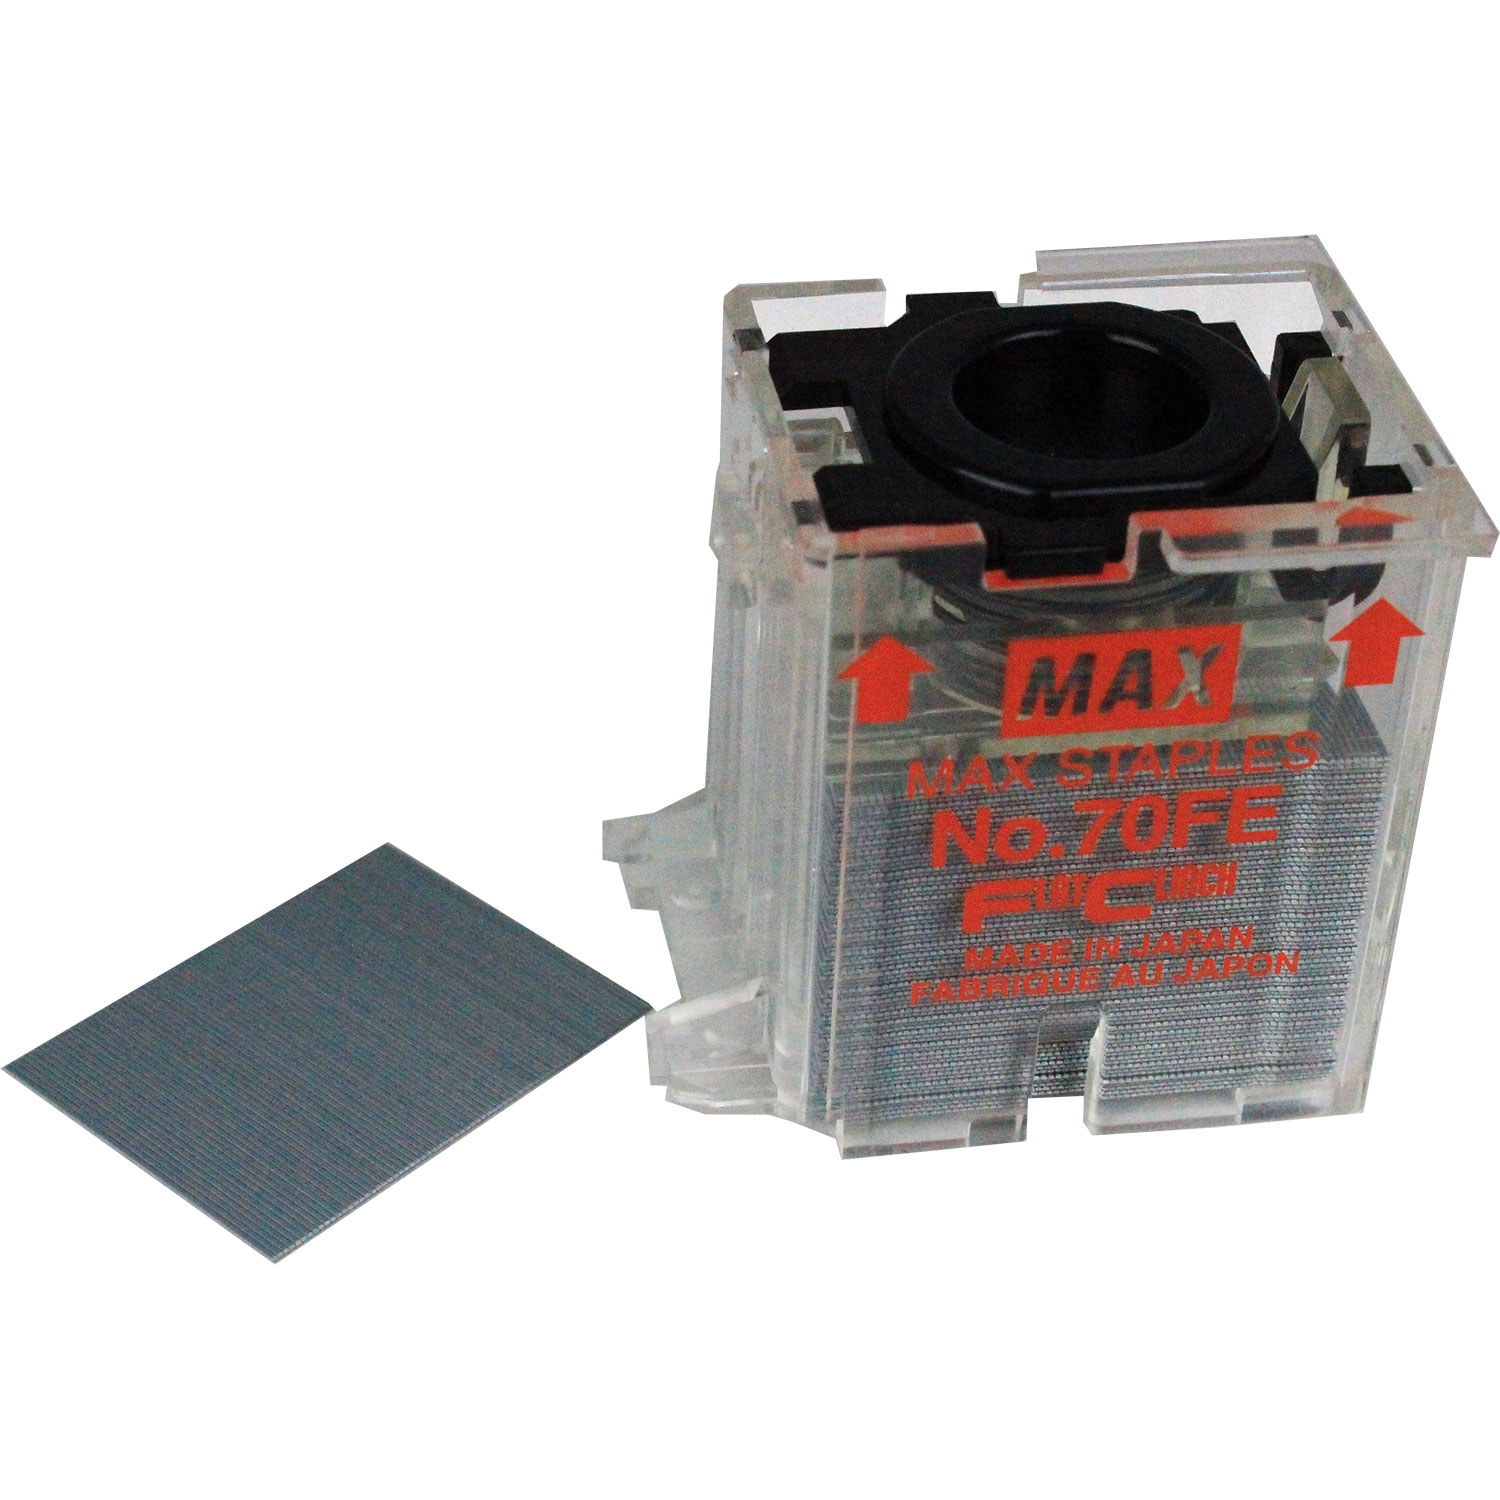 MAX 70FE Staple Refill Cartridge (single)